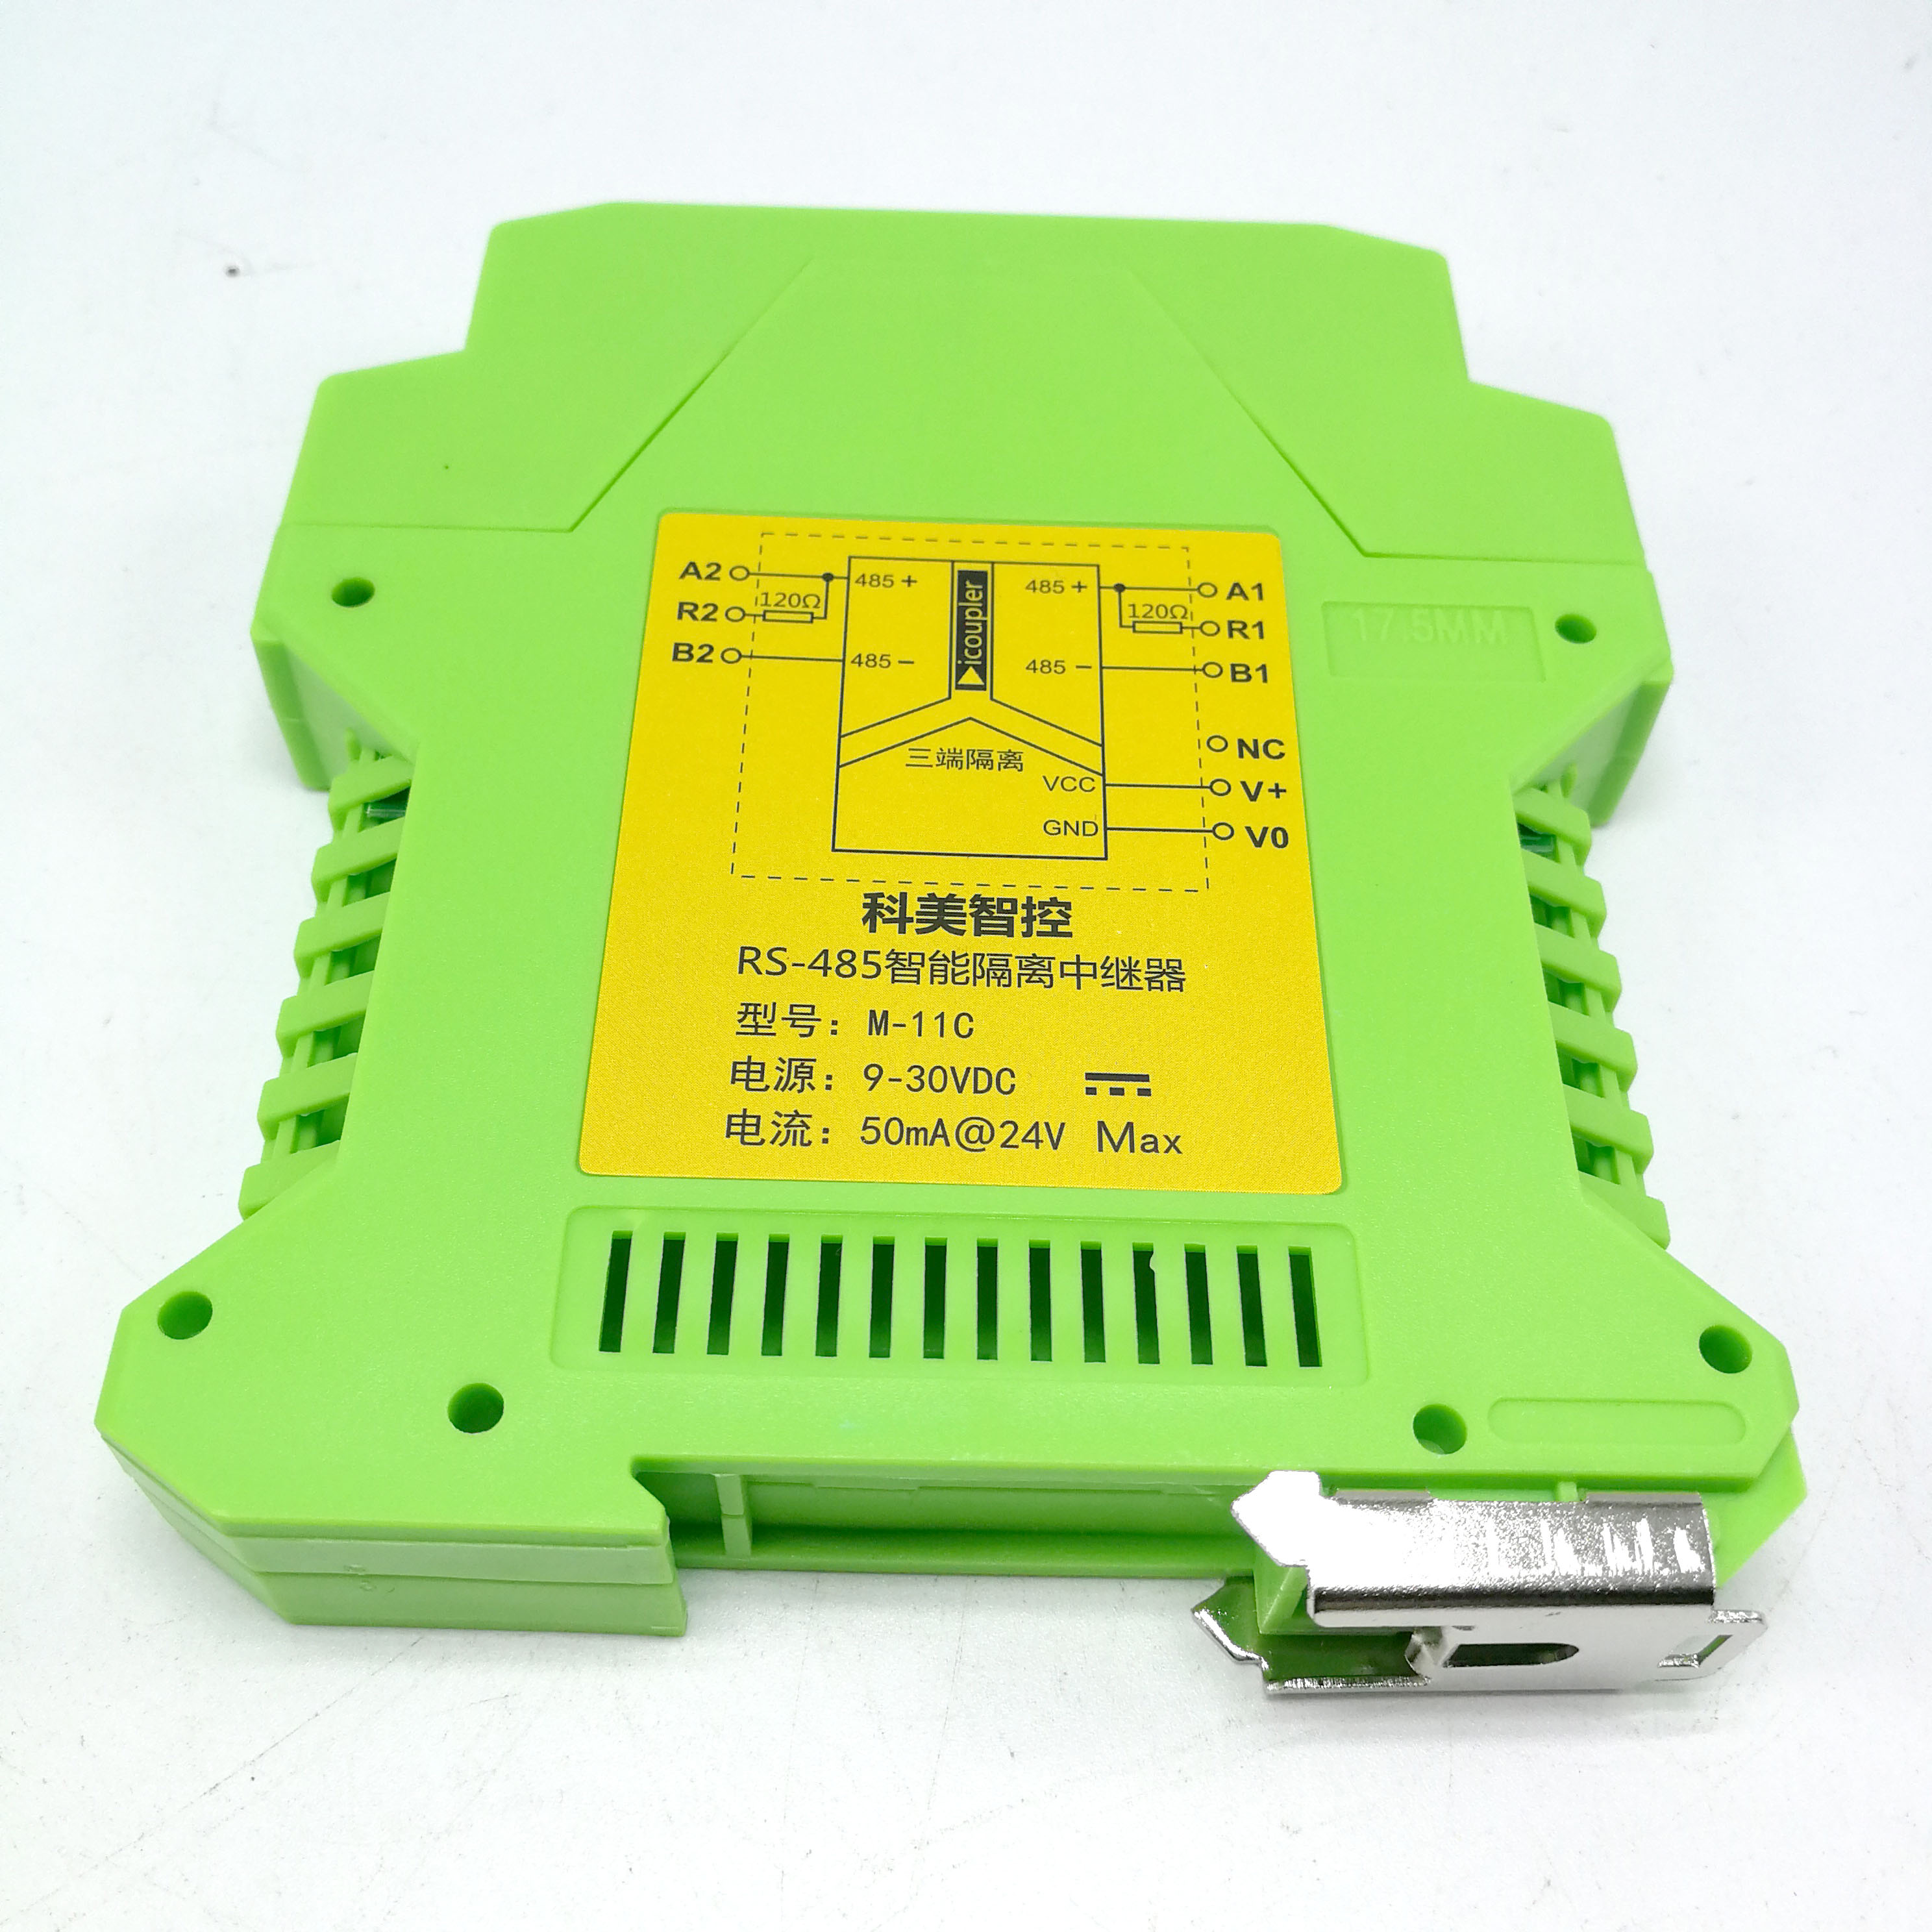 RS485 repeater intelligent isolation module hub isolation grid industrial DIN rail installation